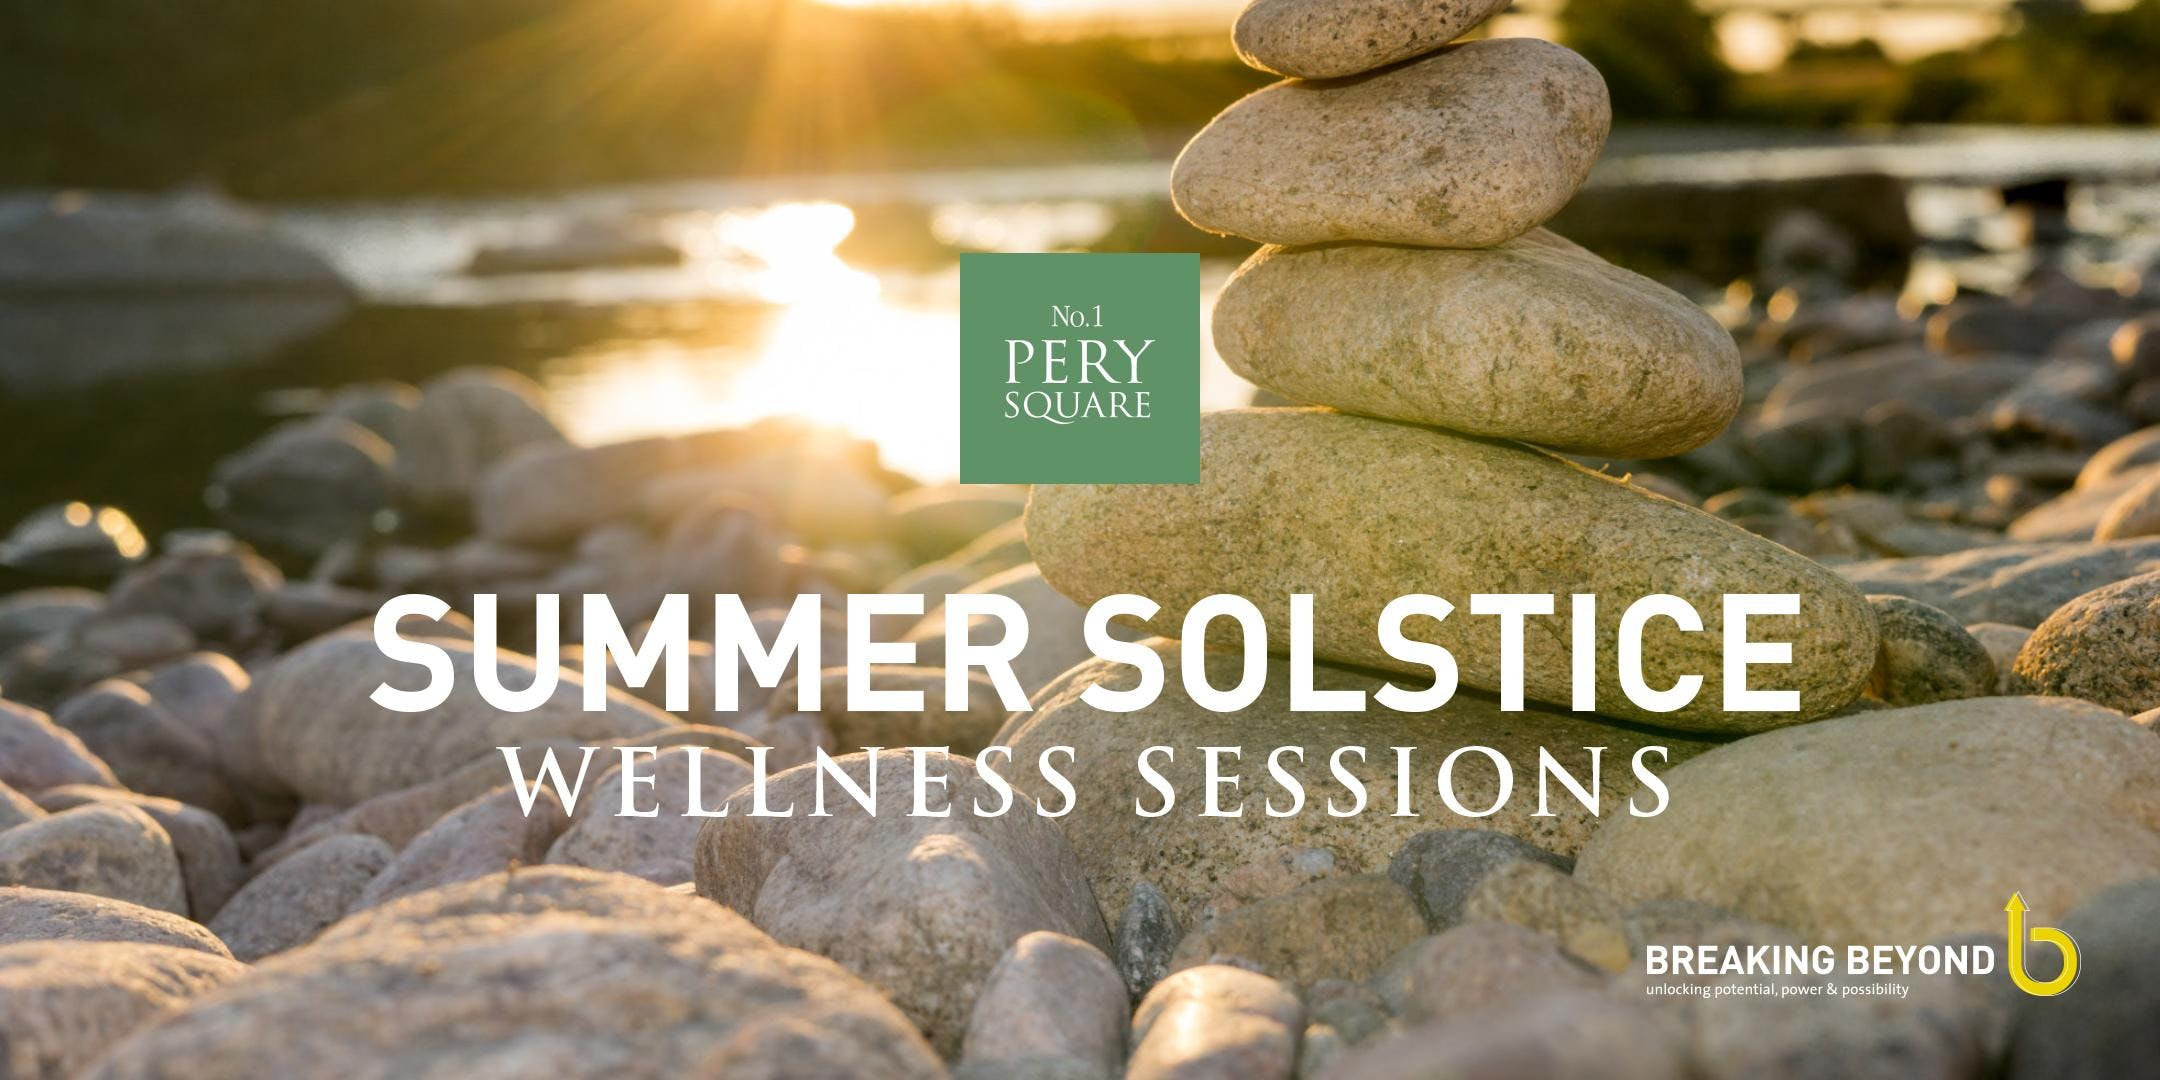 Summer Solstice Wellness Sessions